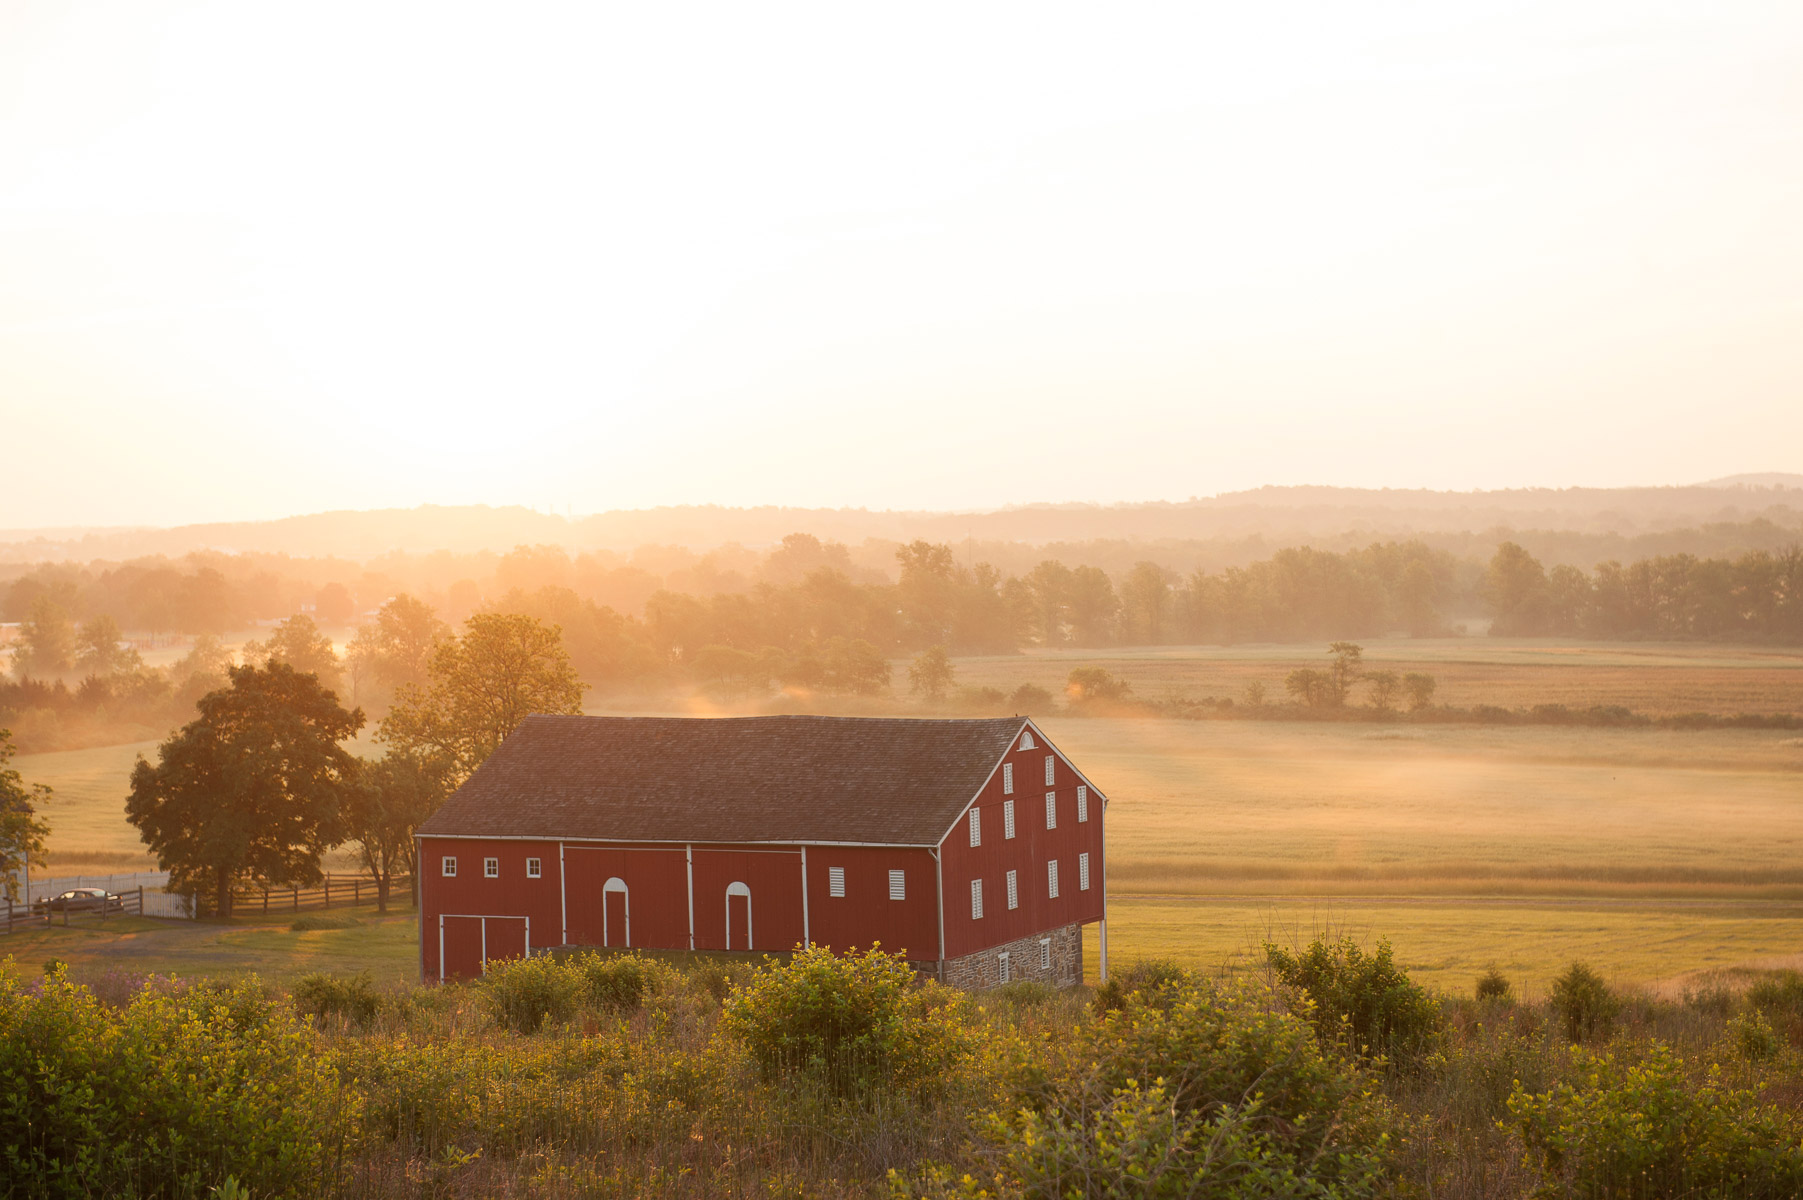 The rural landscape looks very similar to what it was like in 1863. This was taken near the observation tower, which is part of the 24-mile long auto tour that wind through the Gettysburg National Military Park in Pennsylvania. May 31, 2013. VANESSA VICK FOR THE NEW YORK TIMES